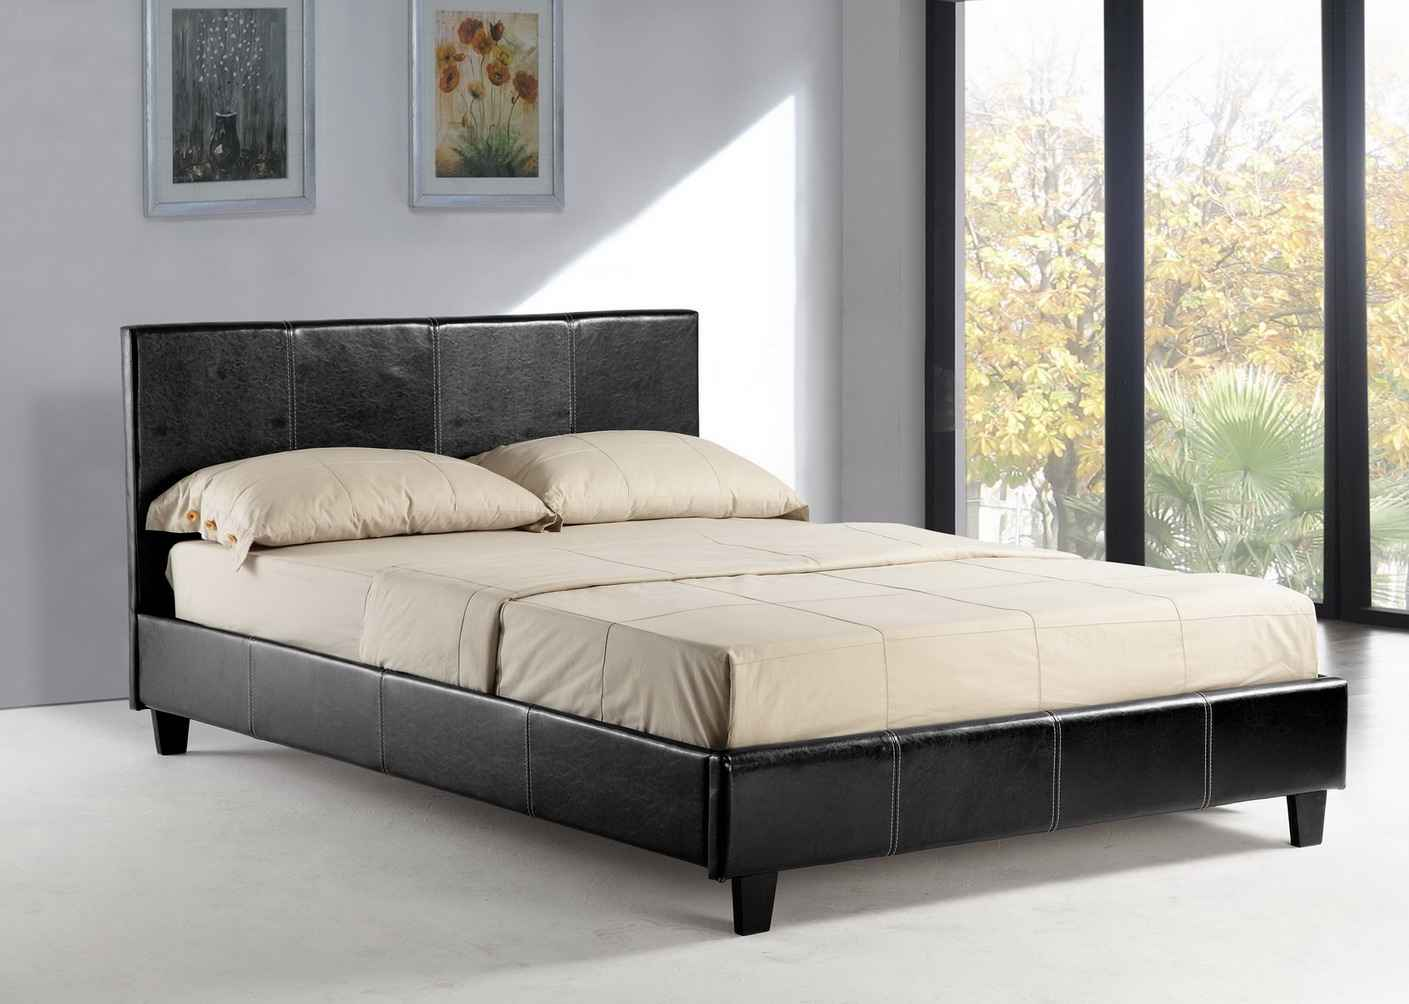 Cheap queen mattresses available at stores for The cheapest bed